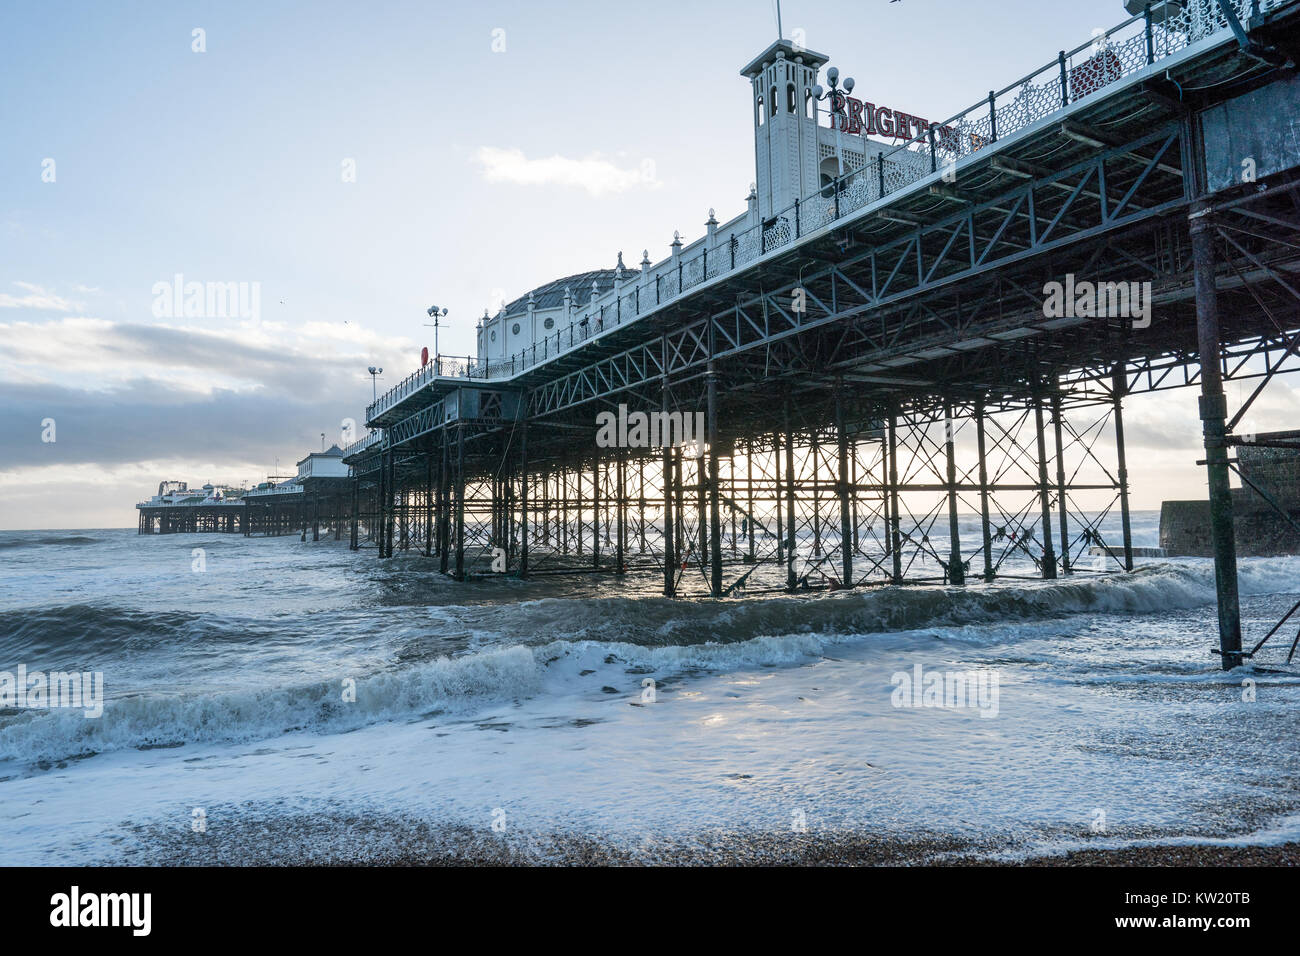 Brighton, UK. 29th December, 2017. A view of Brighton pier during winter. Photo date: Friday, December 29, 2017. - Stock Image